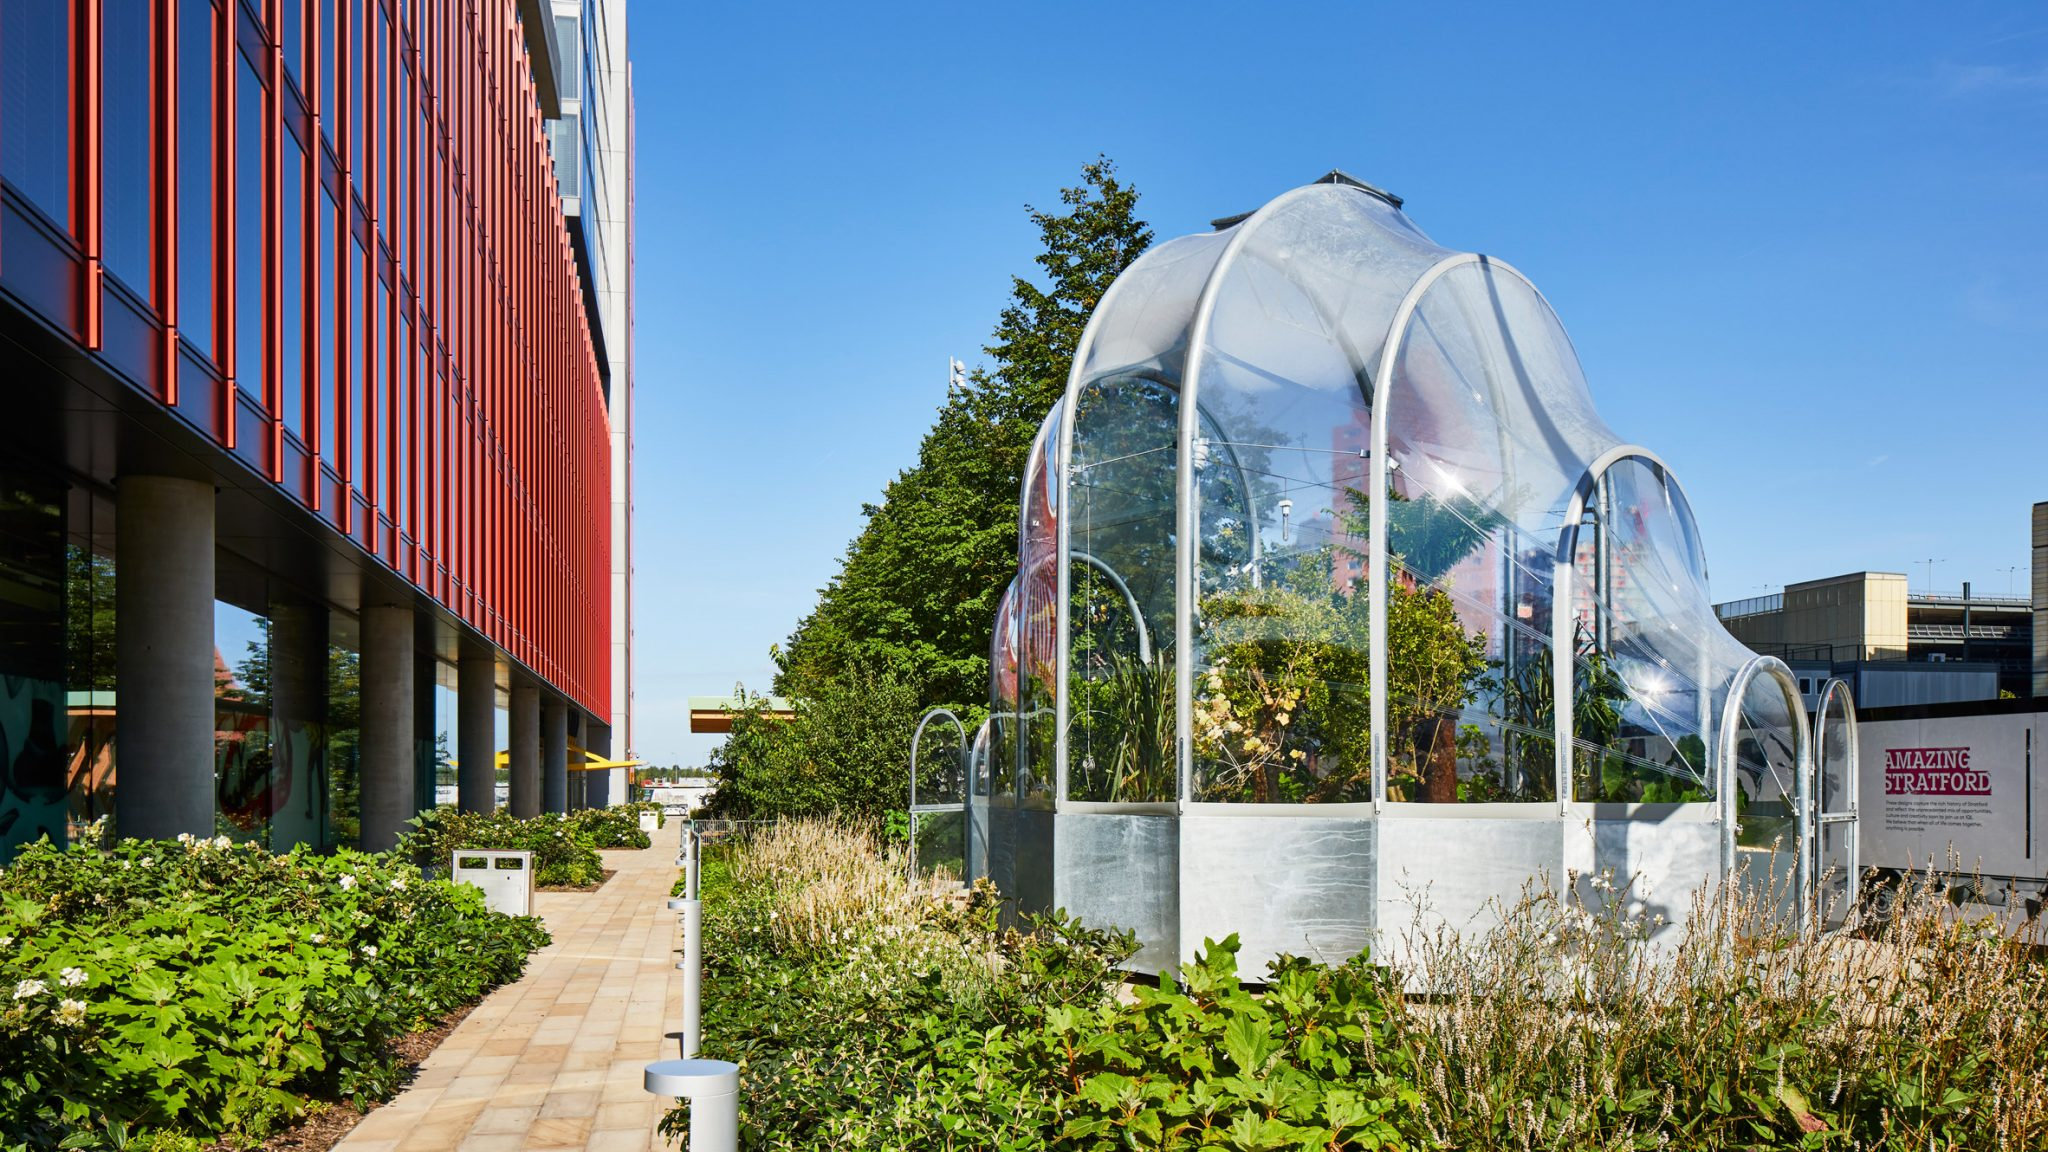 Hothouse by Studio Weave at London Design Festival